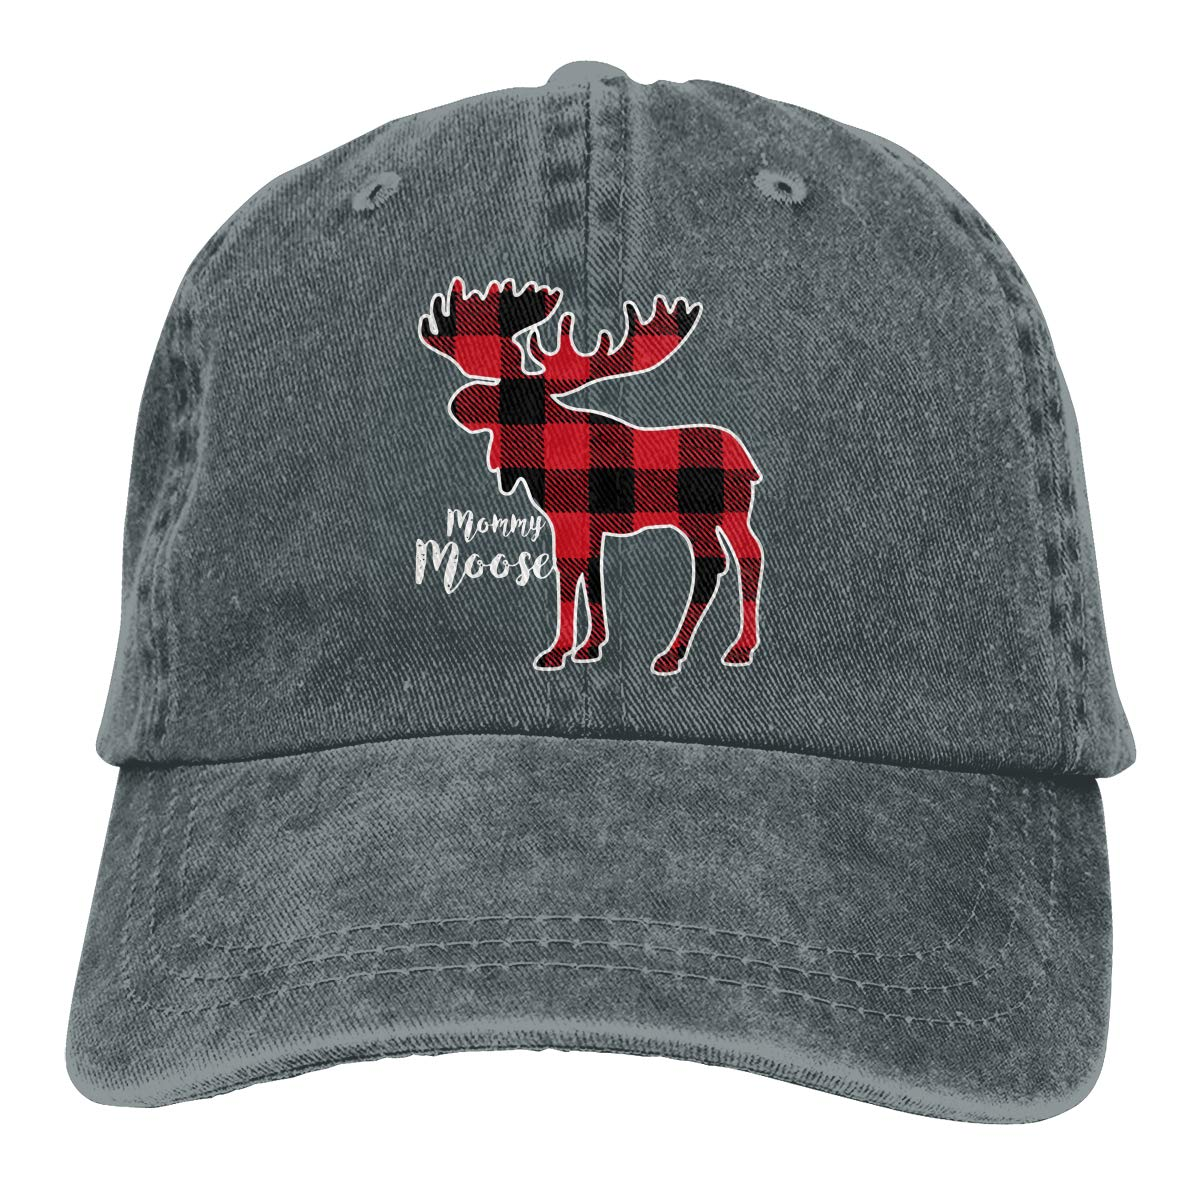 de659f1a737 Mommy Moose - Red Plaid Buffalo Dad Hat Adjustable Denim Hat Classic Baseball  Cap at Amazon Men s Clothing store